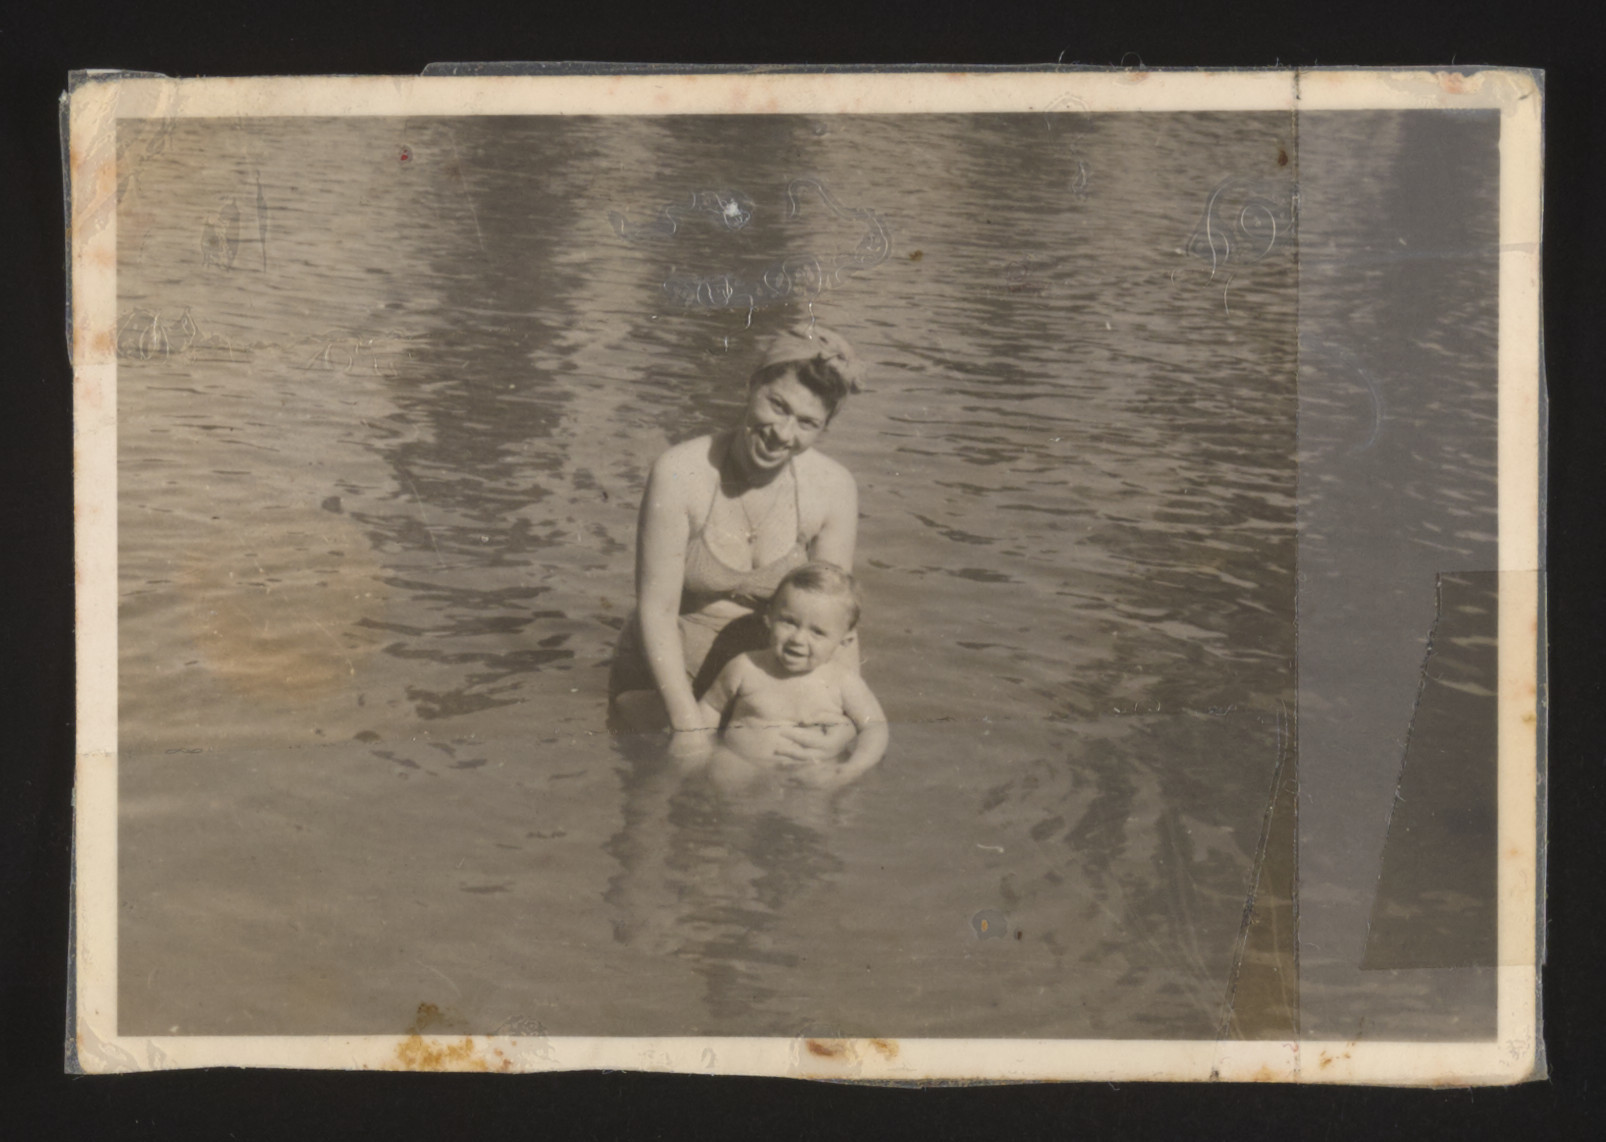 Ibolya and Stephen Bernat pose for a photograph while swimming.